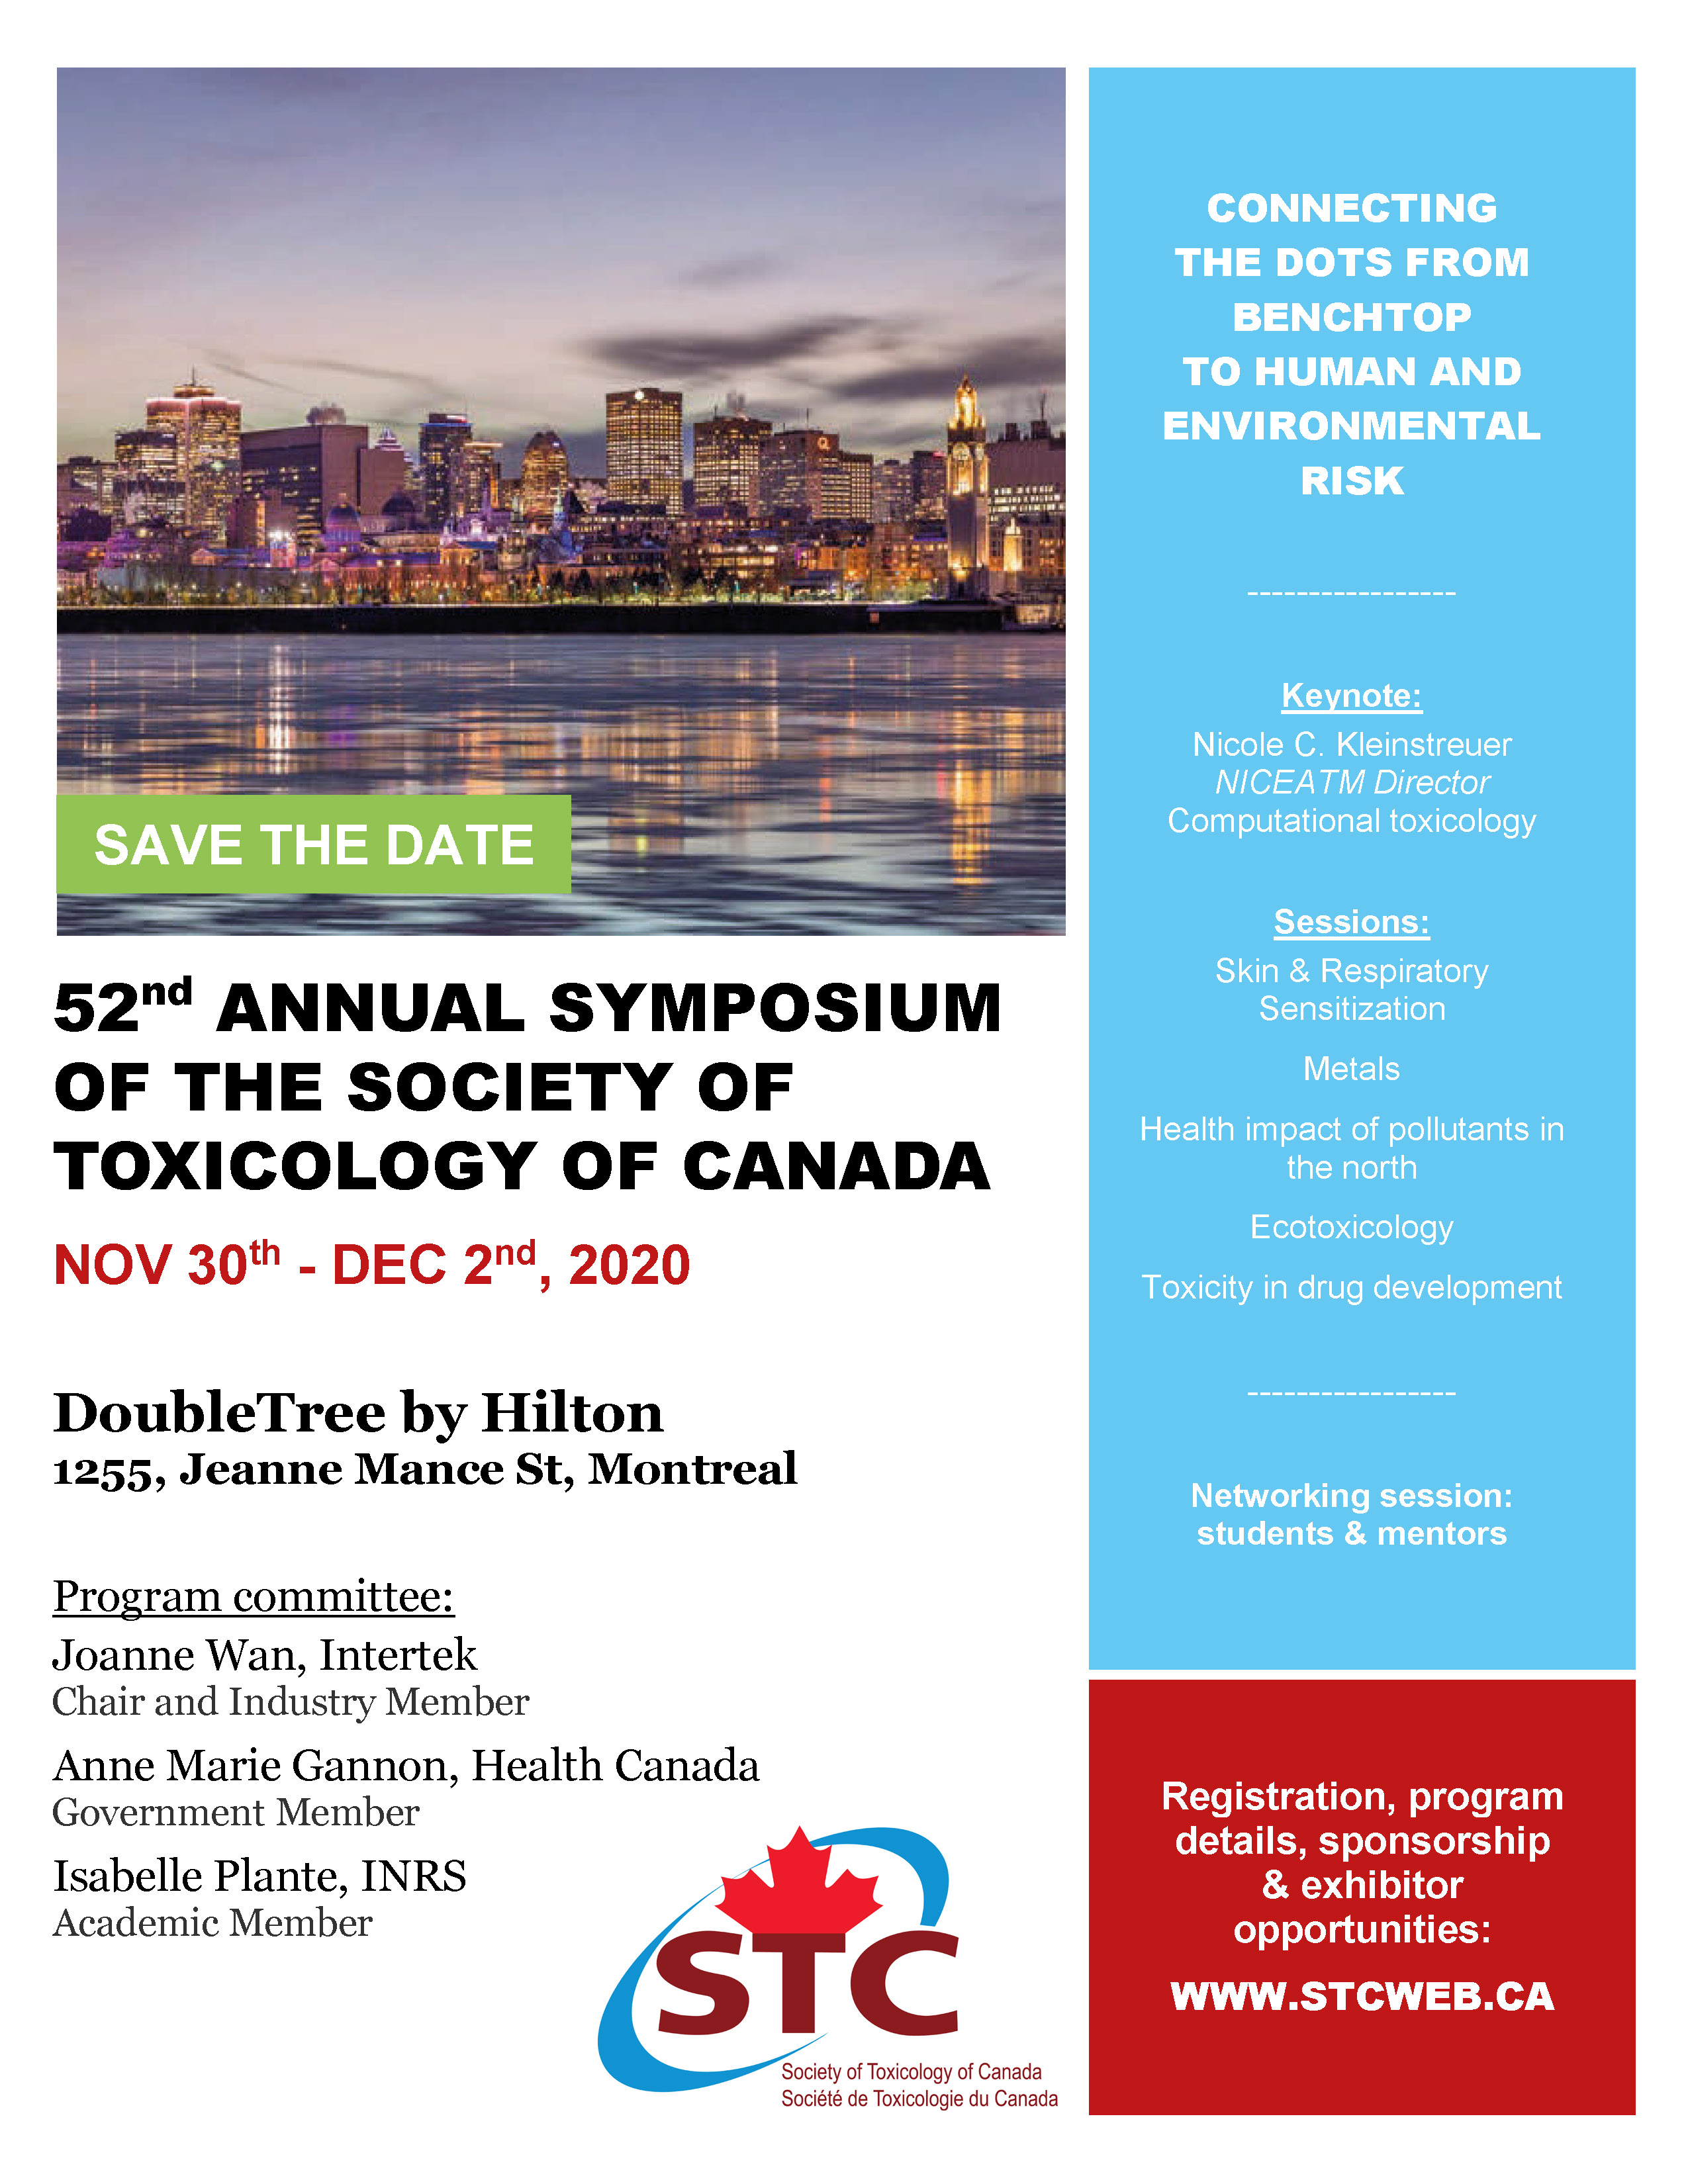 STC 52nd symposium - Save the date